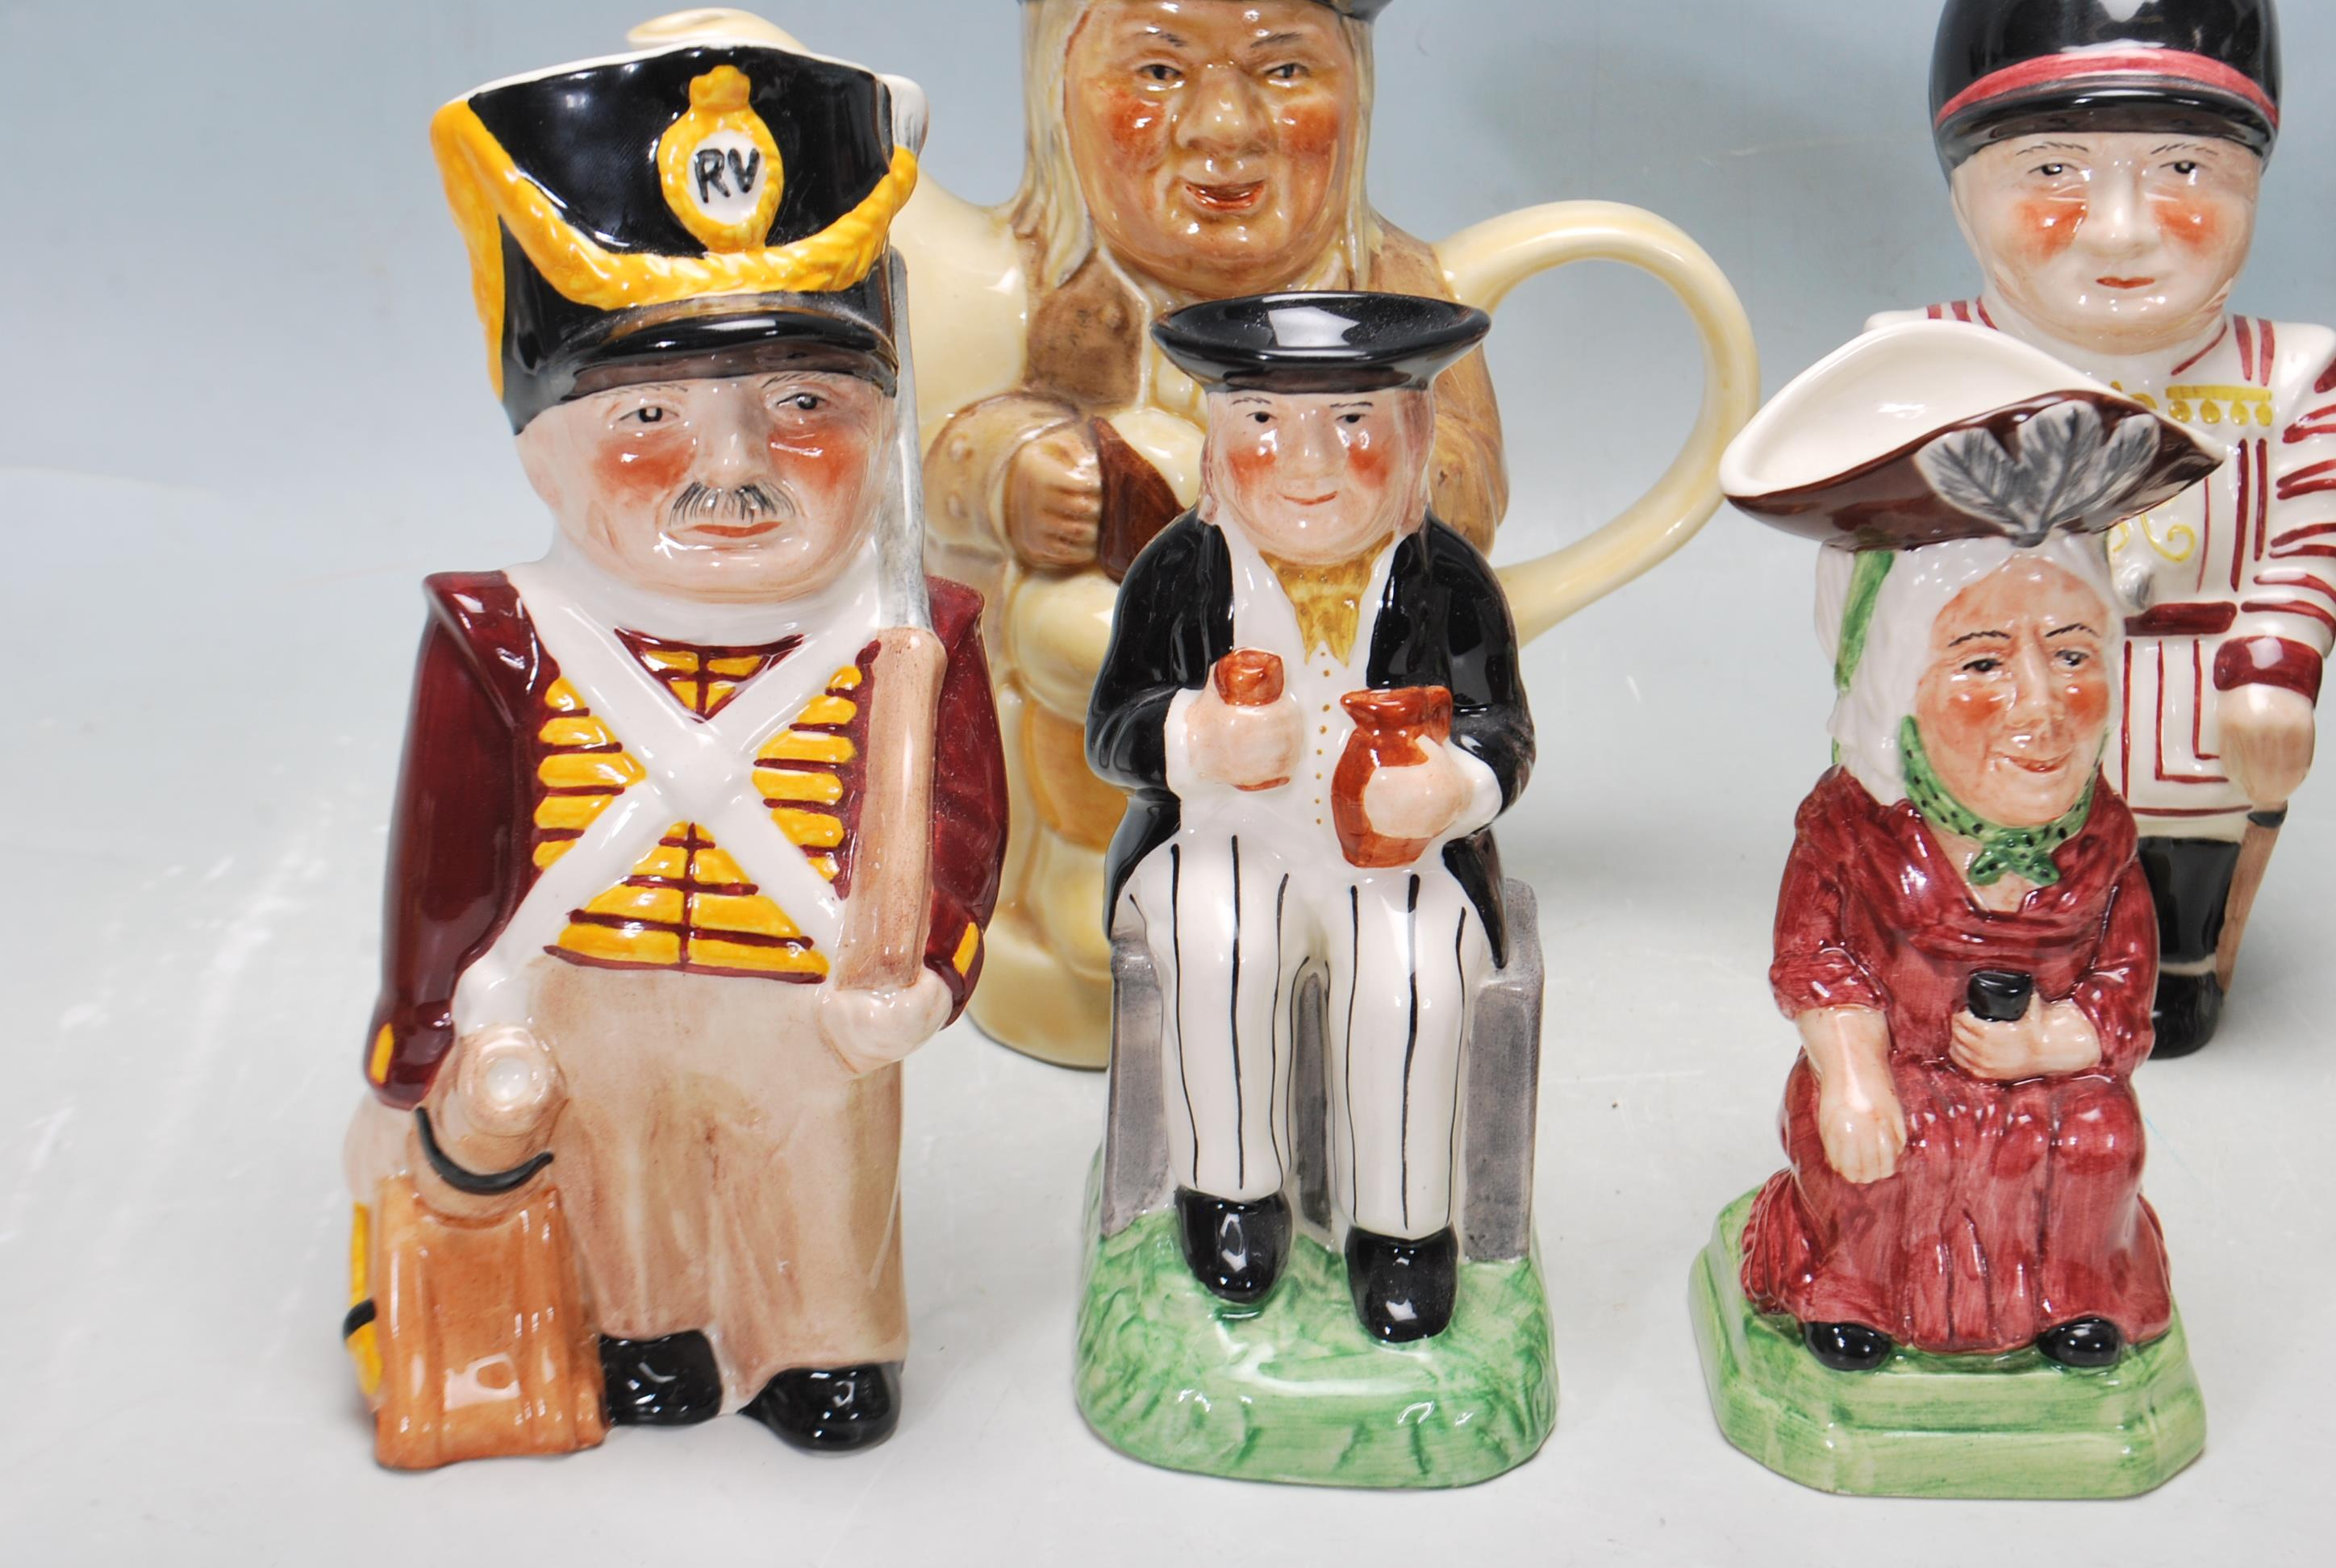 LARGE GROUP OF 20TH CENTURY CERAMIC TOBY JUGS - Image 9 of 9